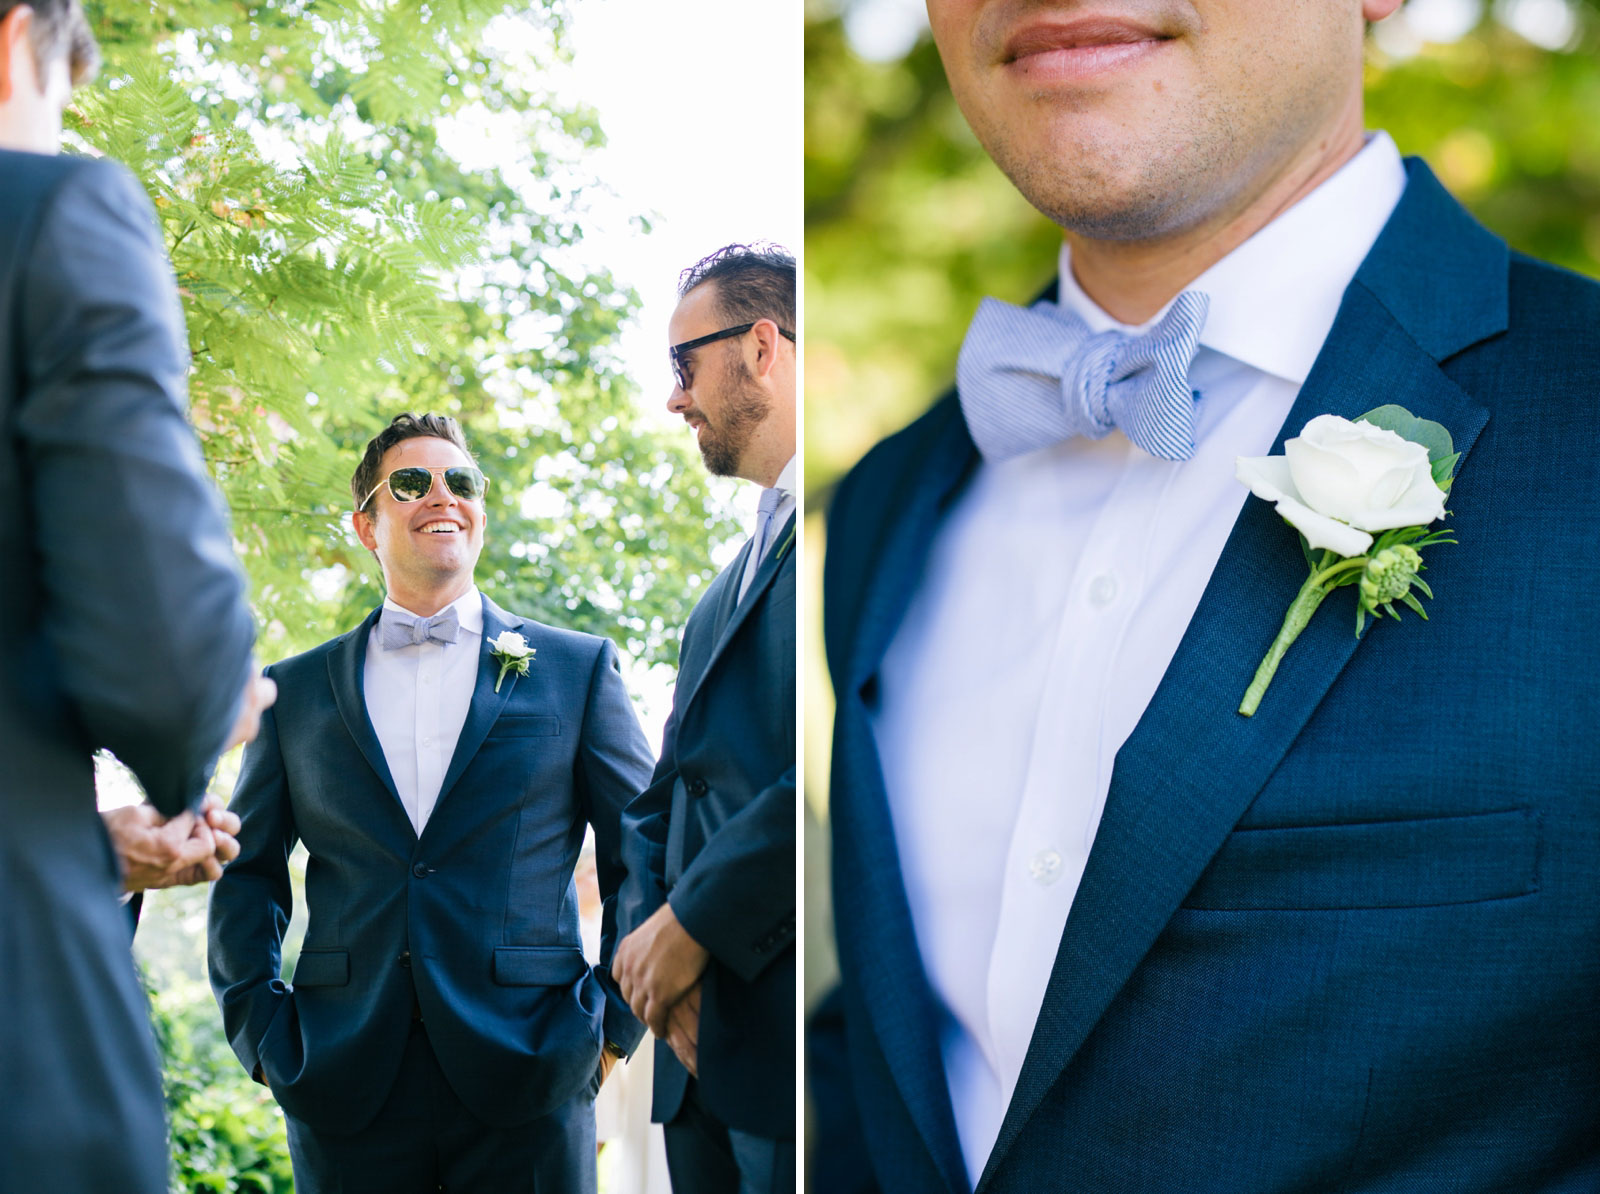 Candid groom portrait, simple white rose boutonniere, nautical white and blue seersucker bow tie